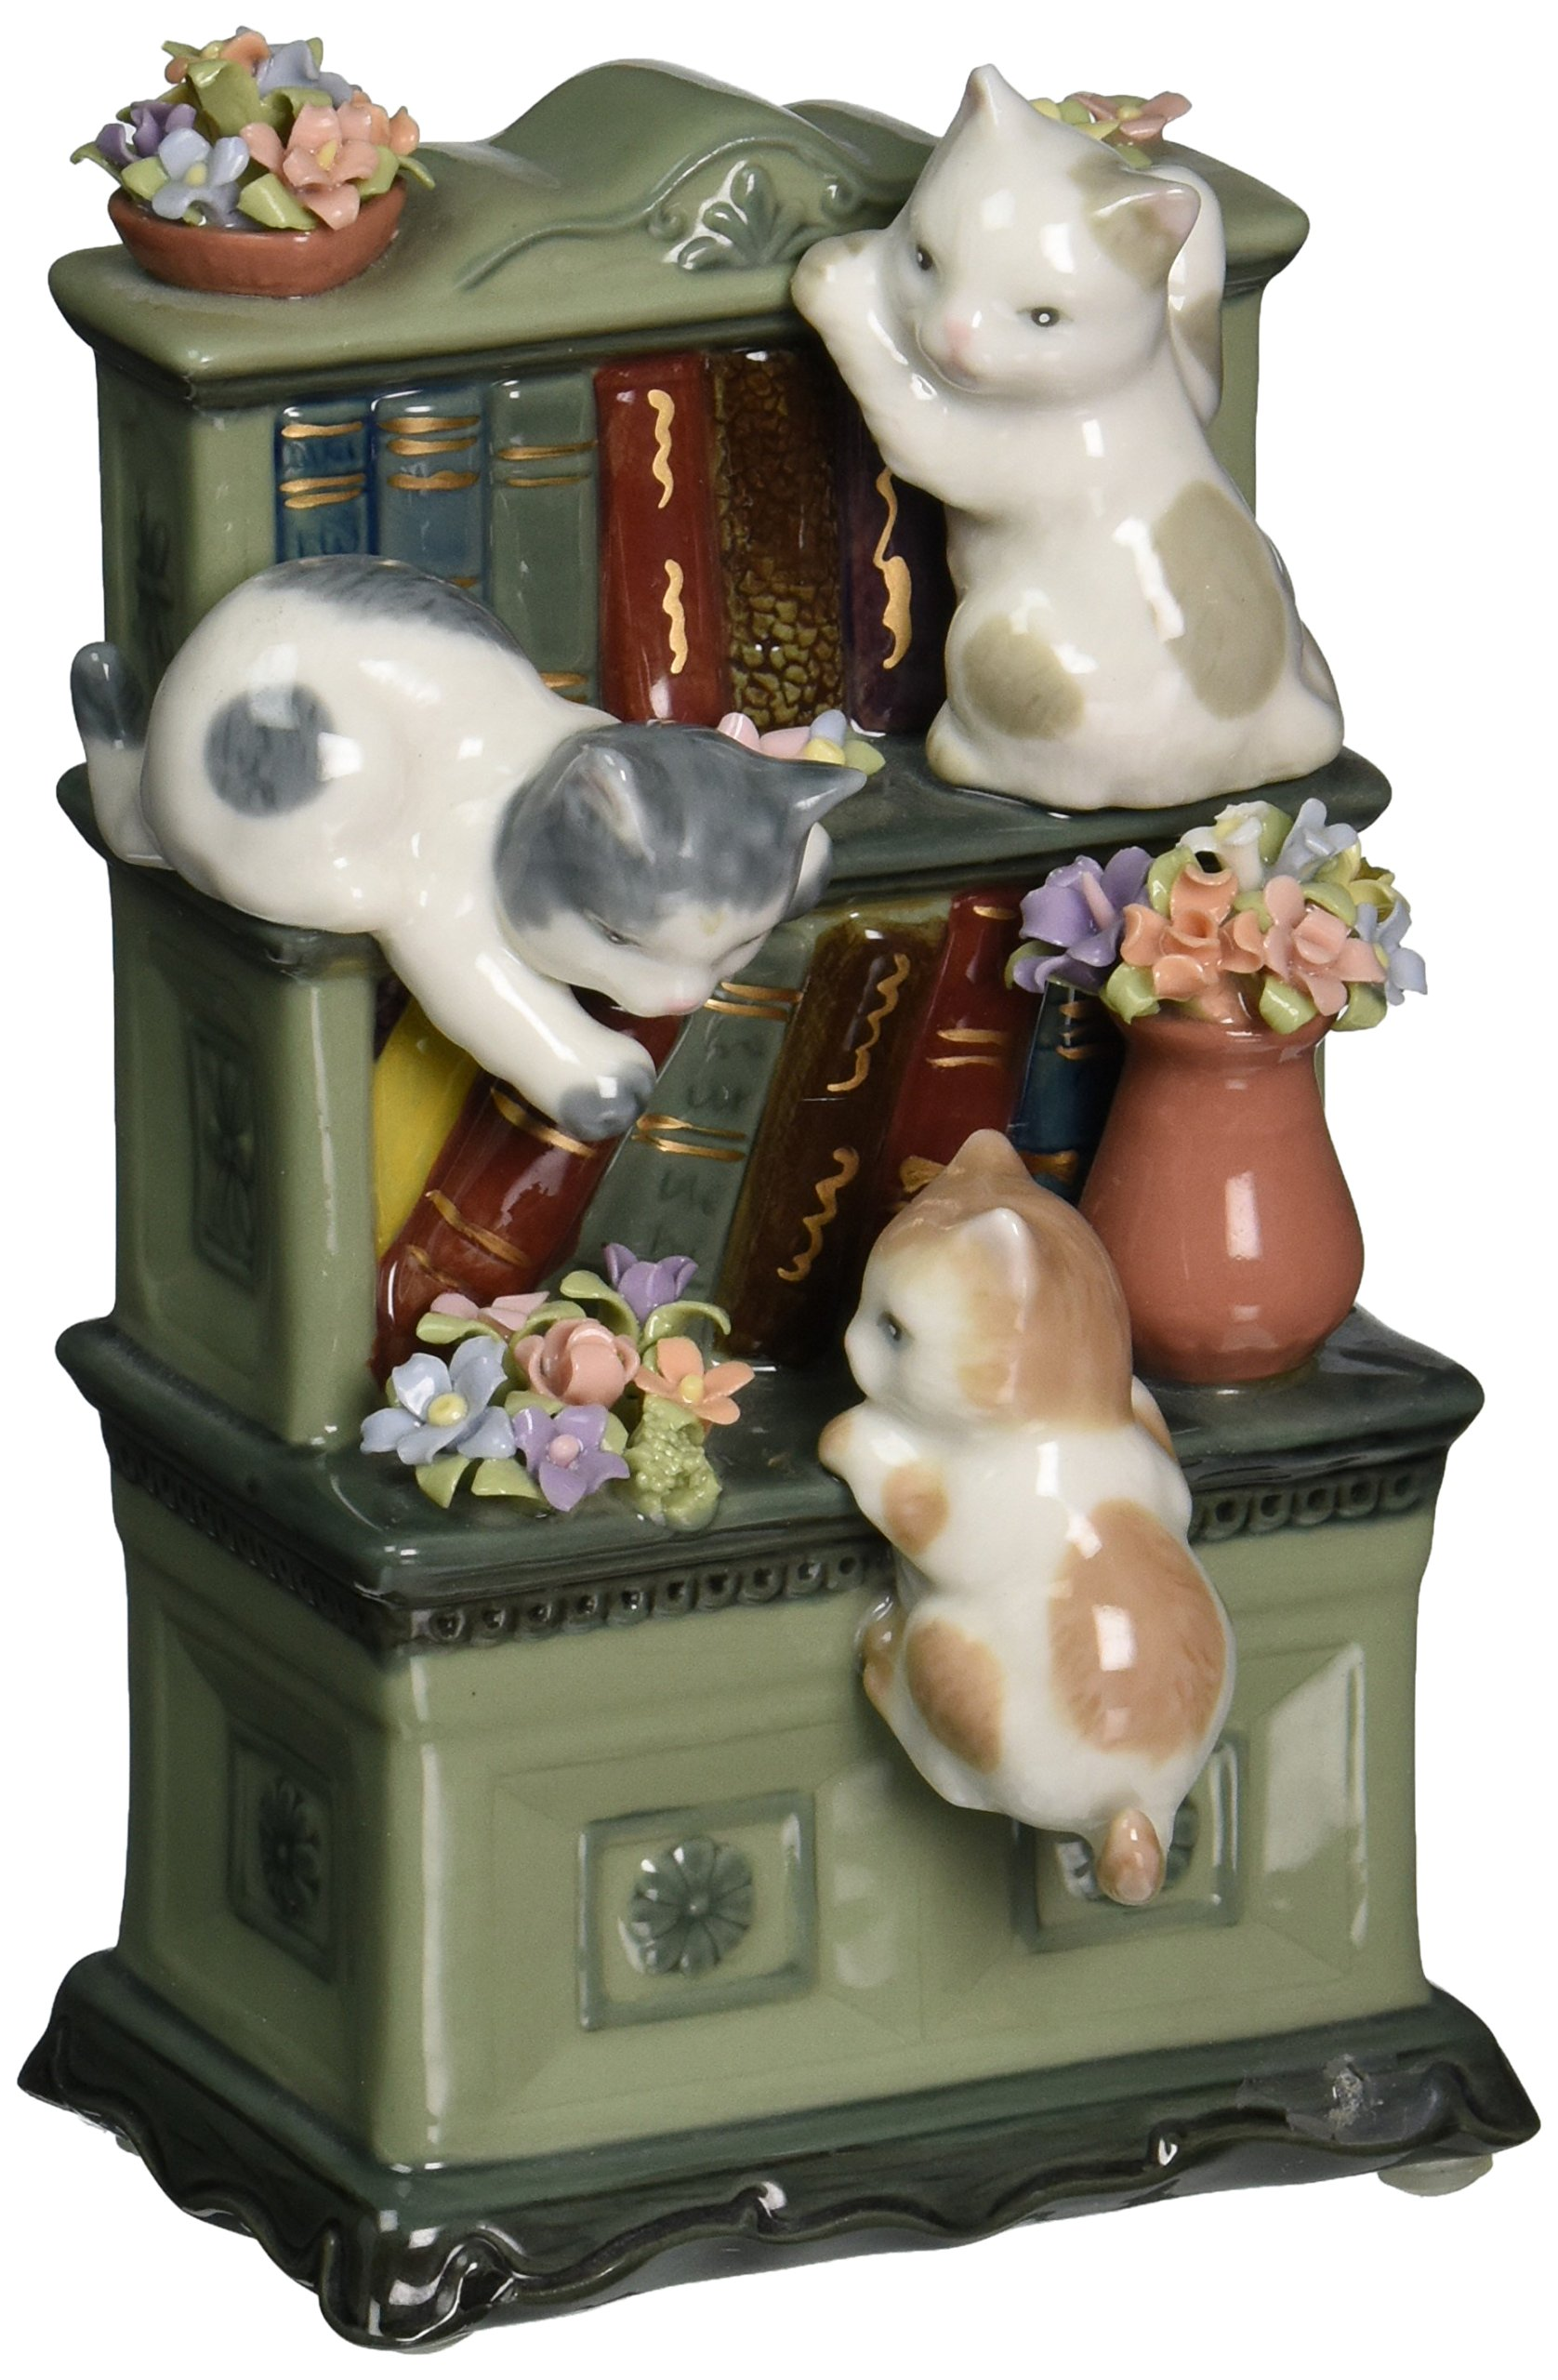 Image of Curious Kittens Musical Figurine